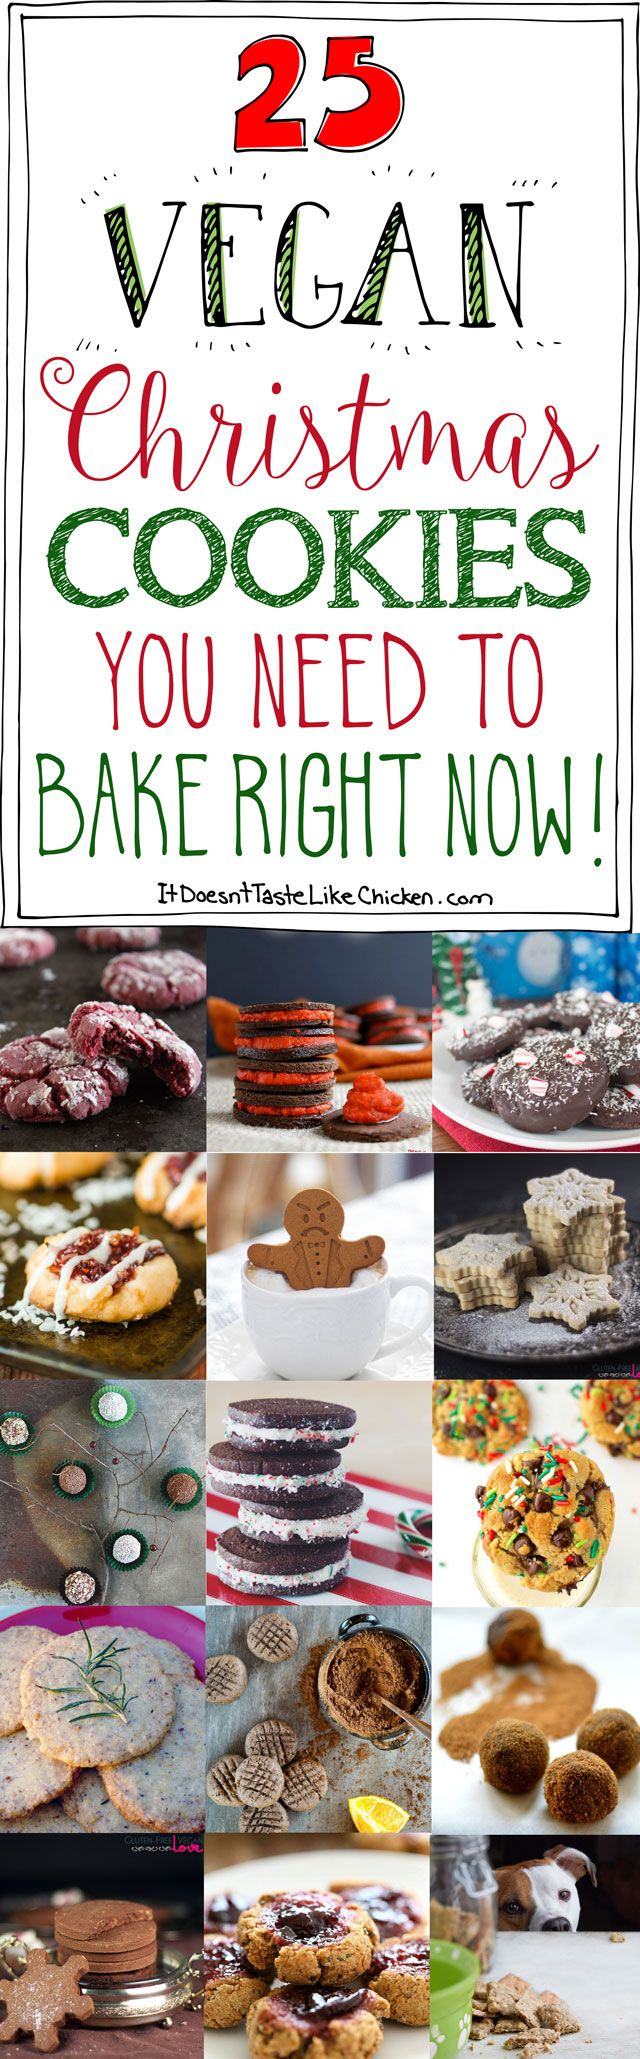 25 Vegan Christmas Cookies You Need To Bake Right Now! #itdoesnttastelikechicken